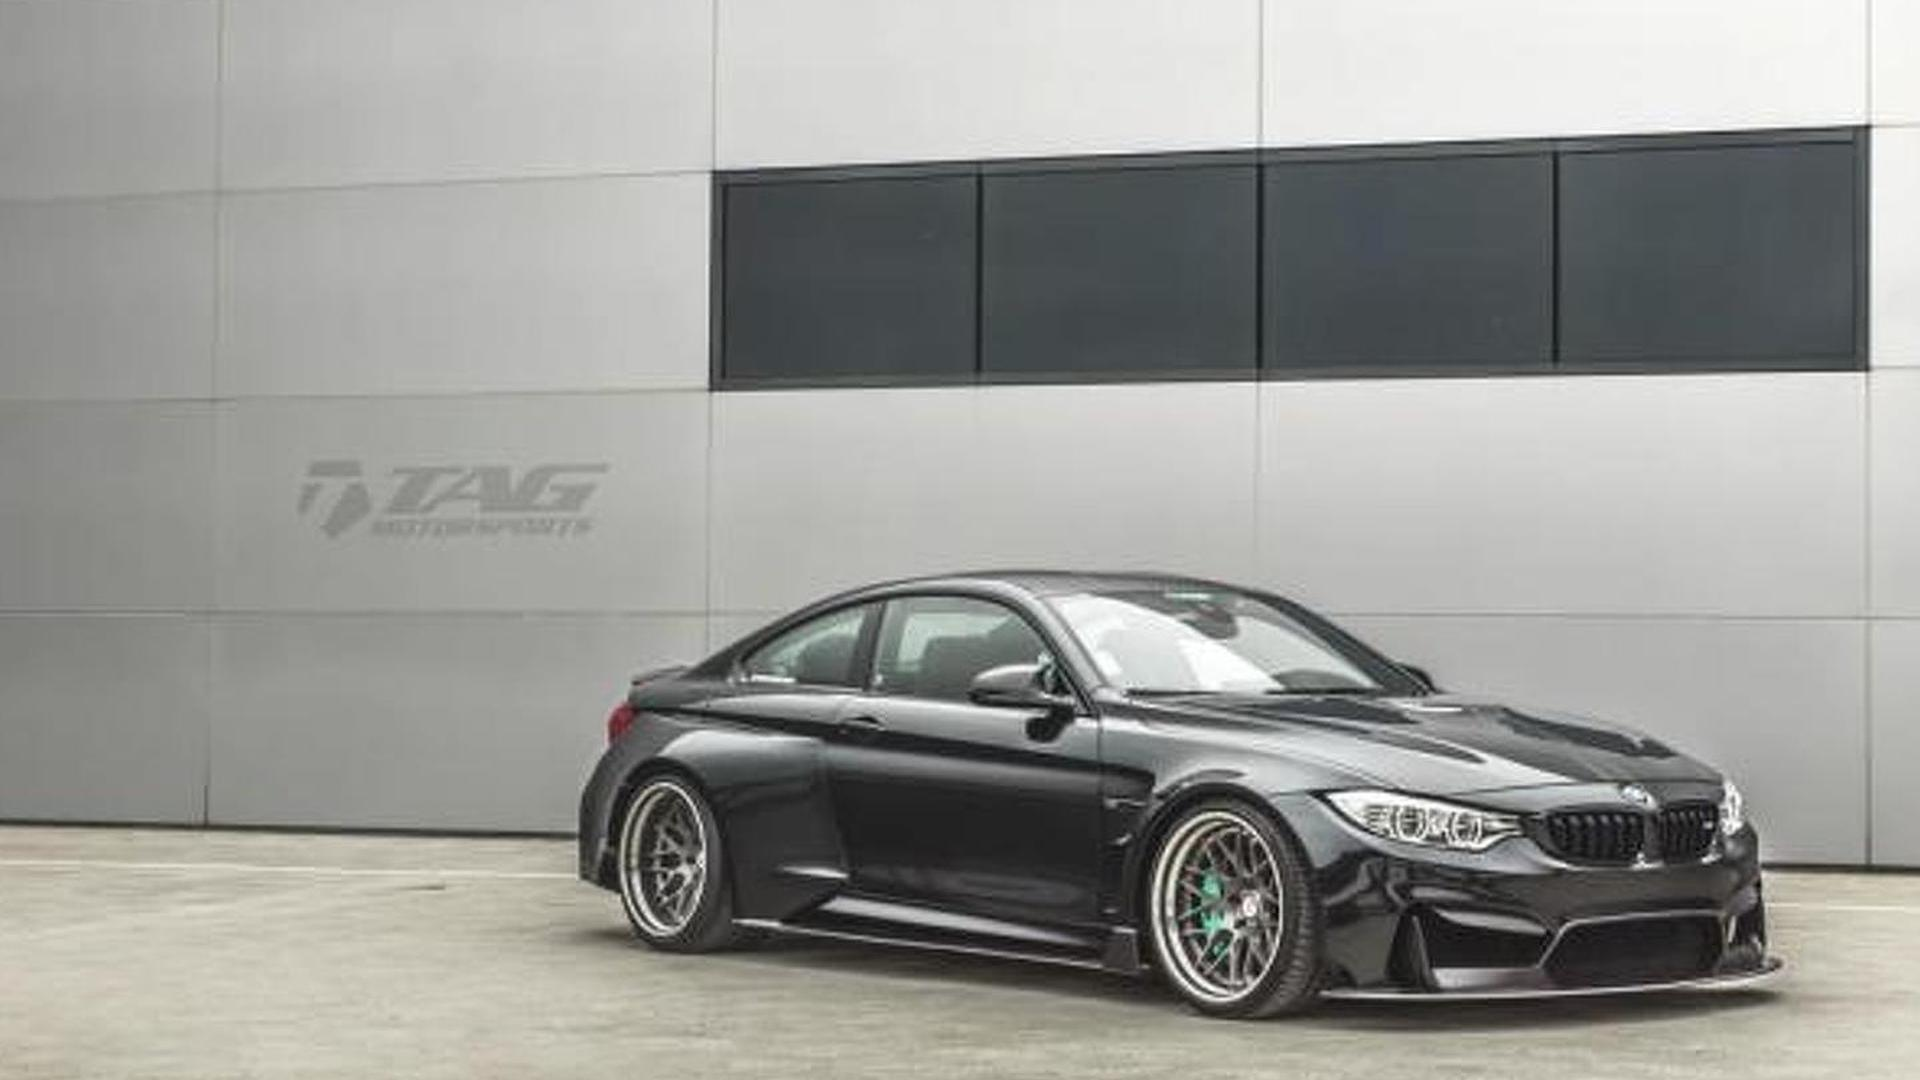 BMW M4 by TAG Motorsports looks mean with very wide body kit